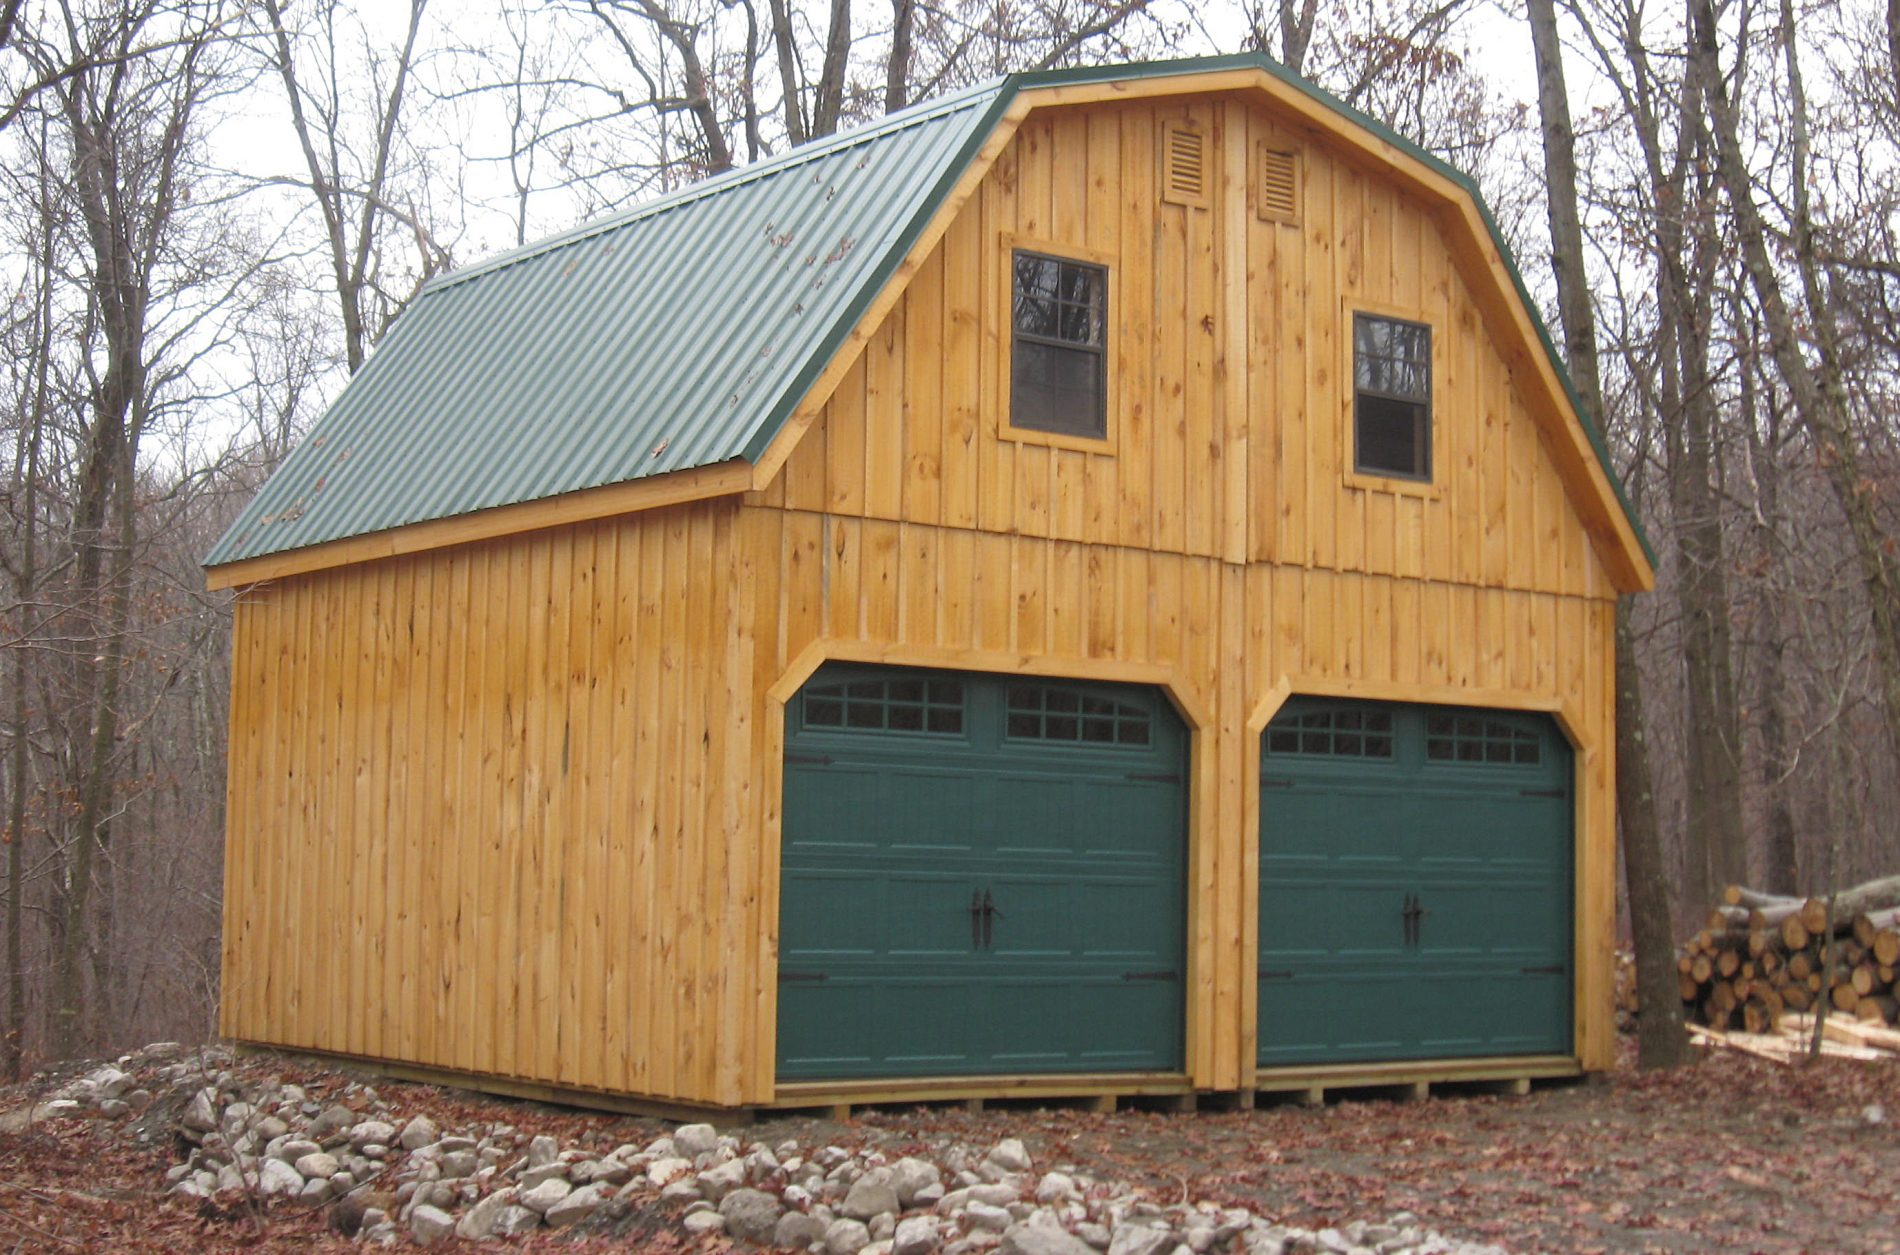 sale for cabin custom garages cabins prefab builders prefabricated your log plan garage zook